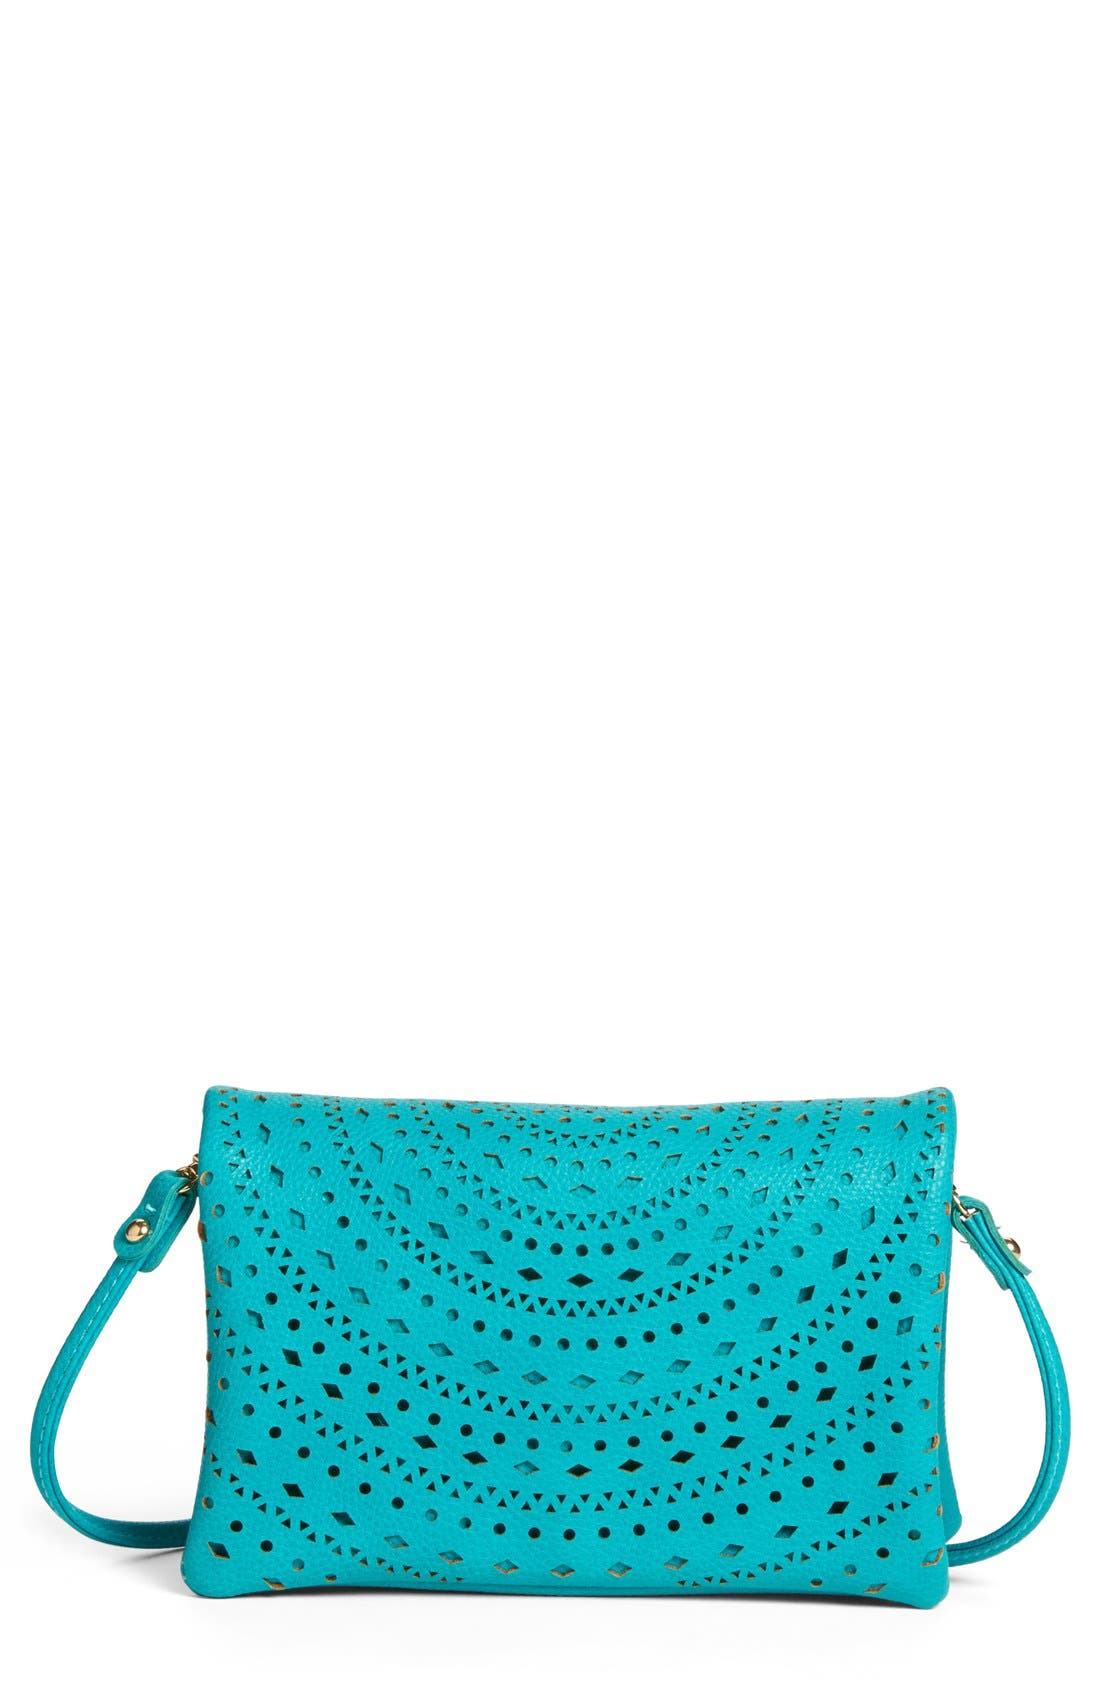 Alternate Image 1 Selected - Street Level Perforated Faux Leather Mini Crossbody Bag